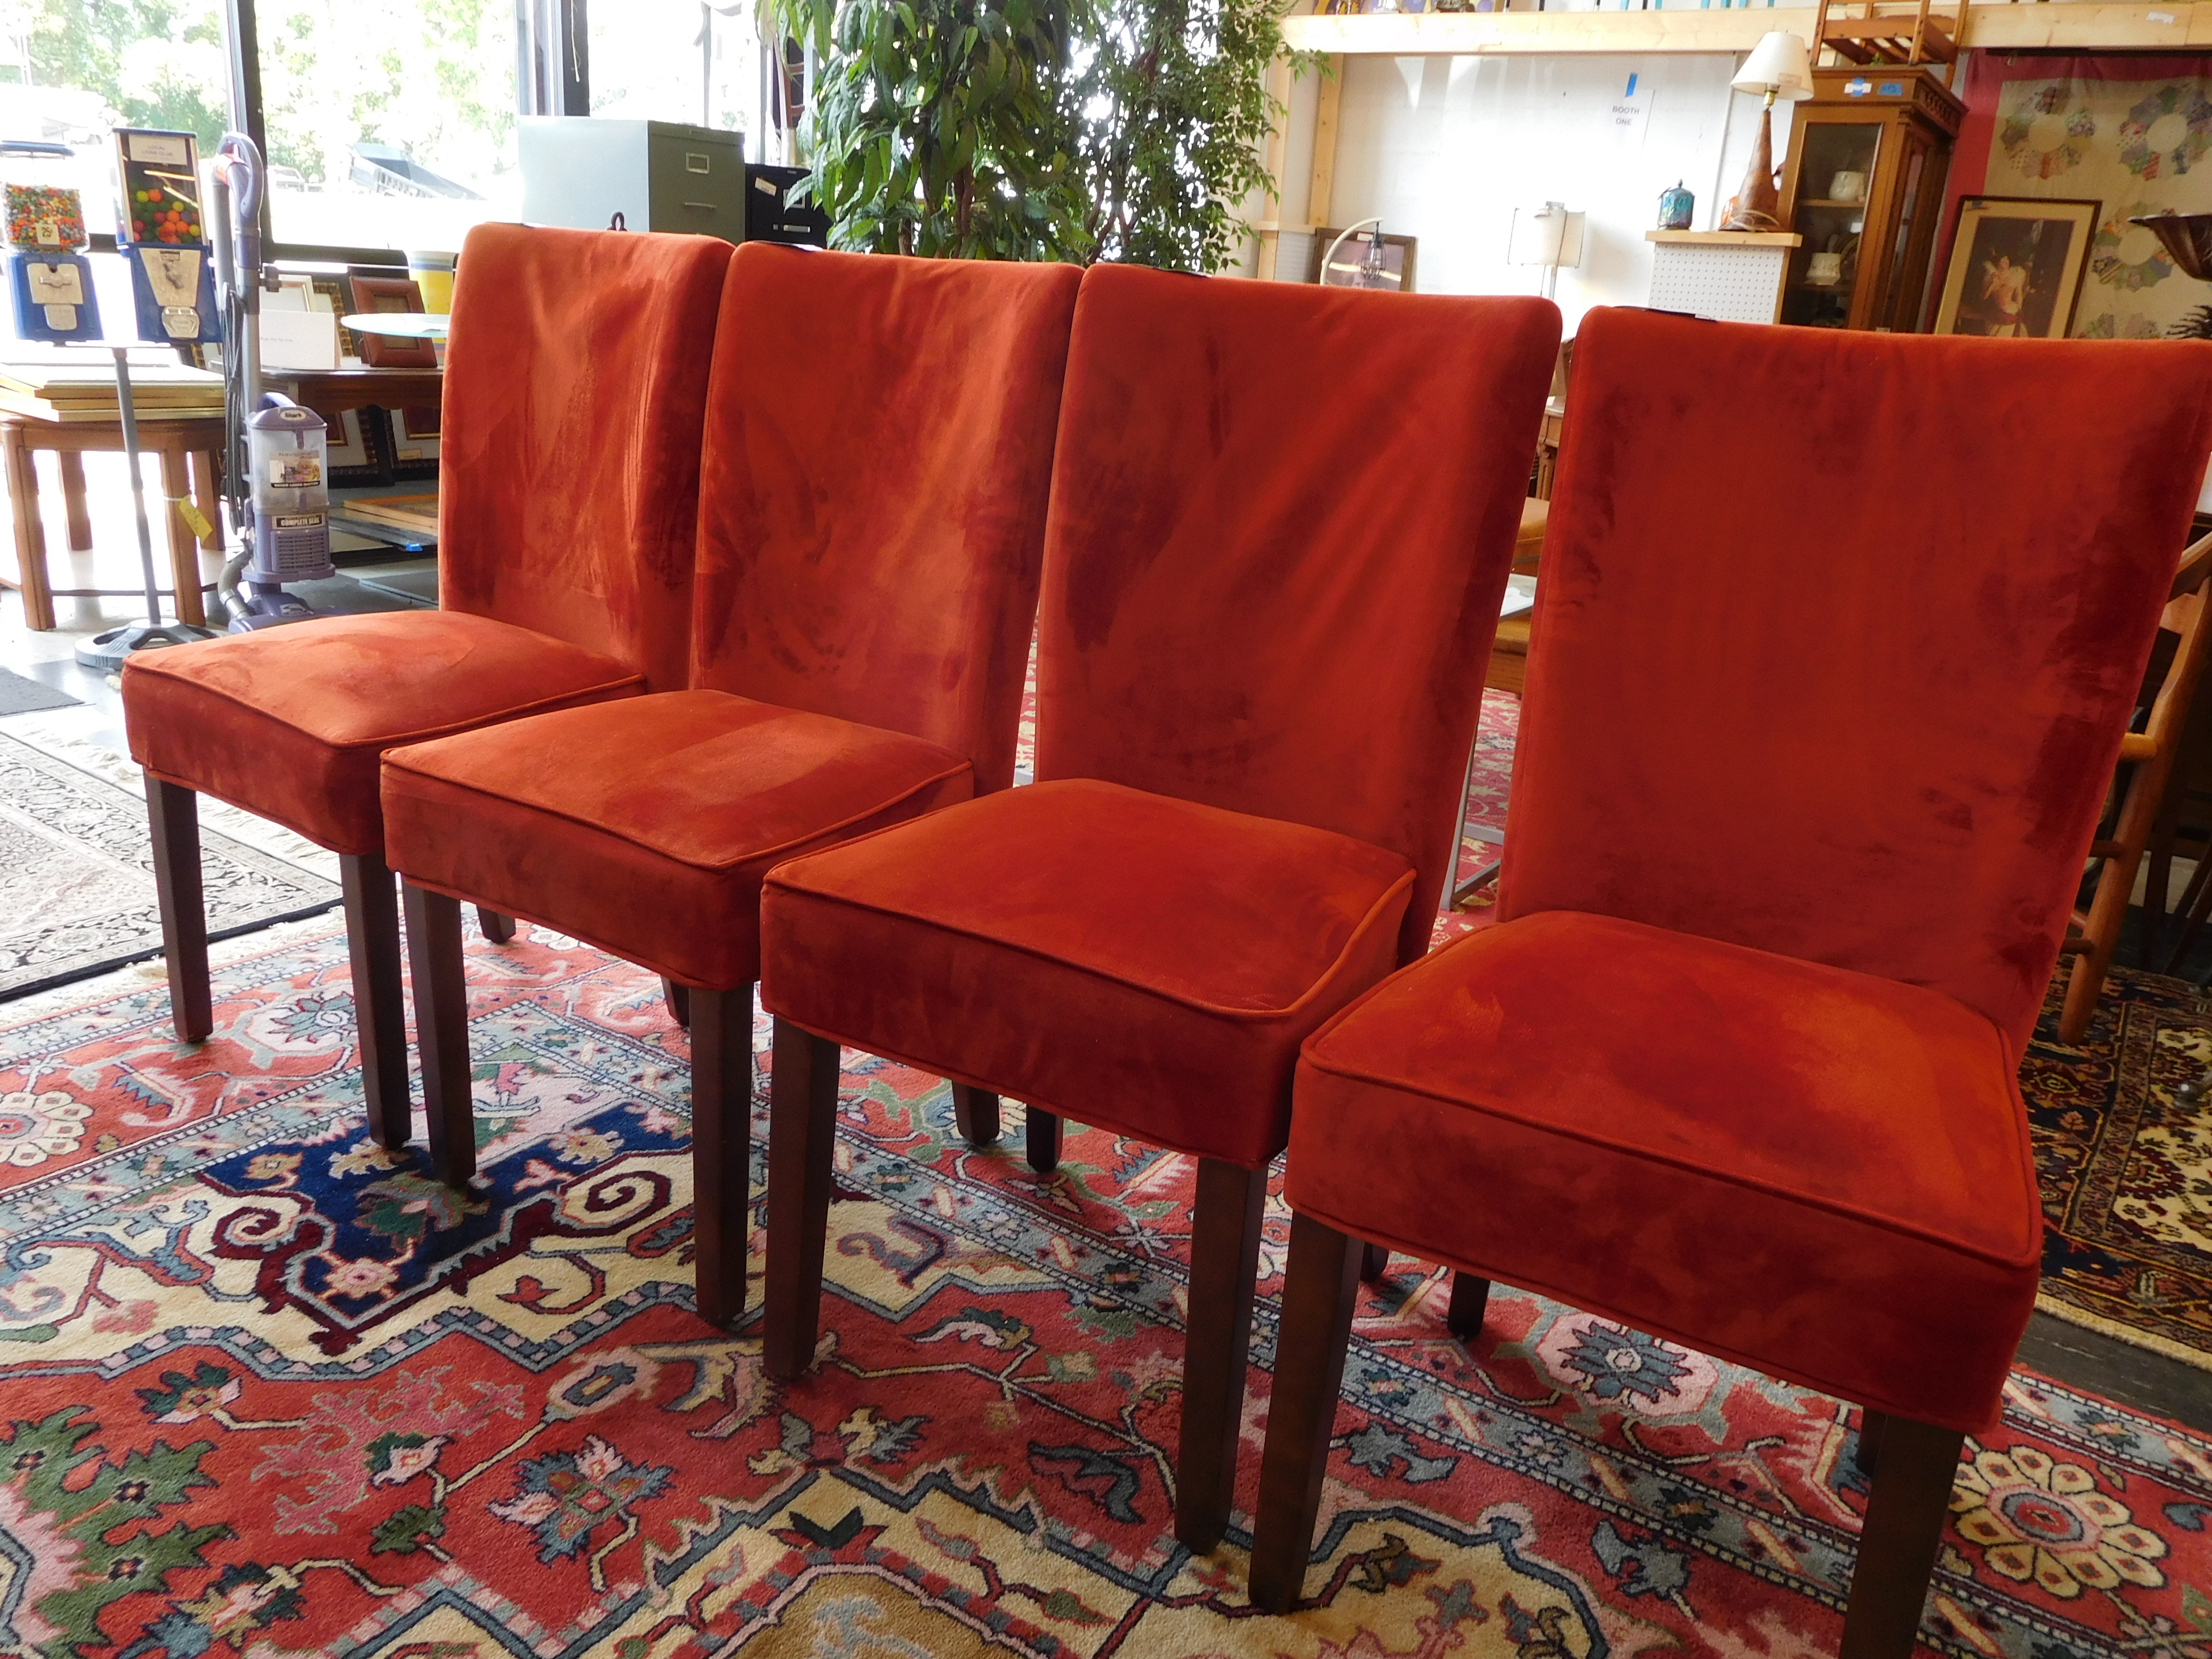 Burnt Orange Upholstered Dining Chair - Wow!